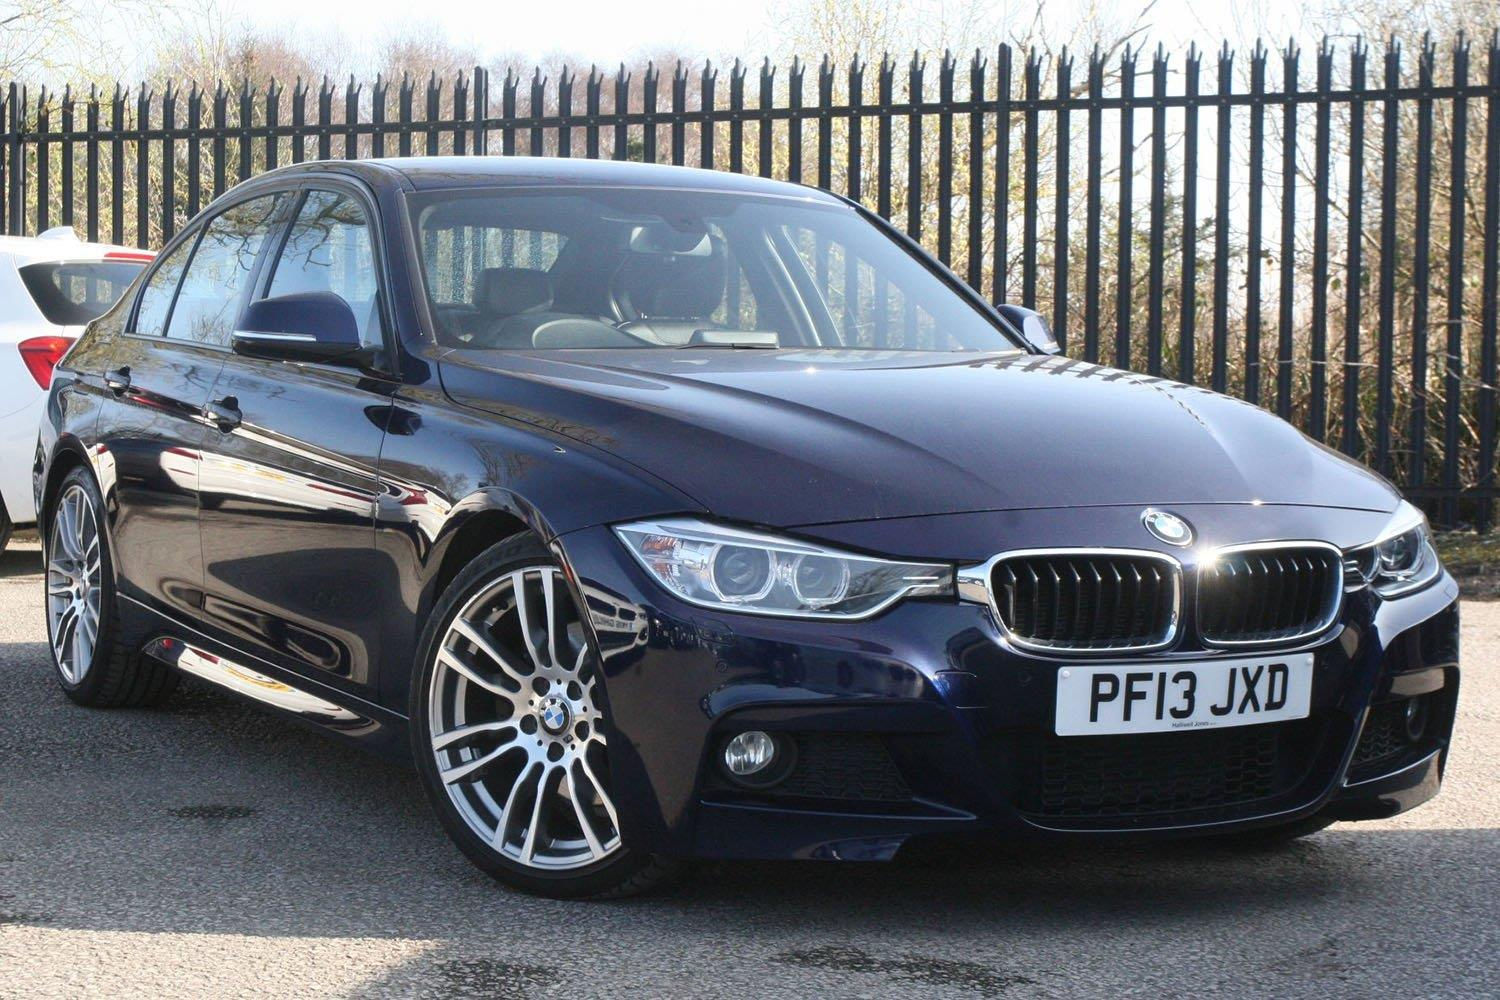 BMW 3 Series Saloon PF13JXD - Image 7